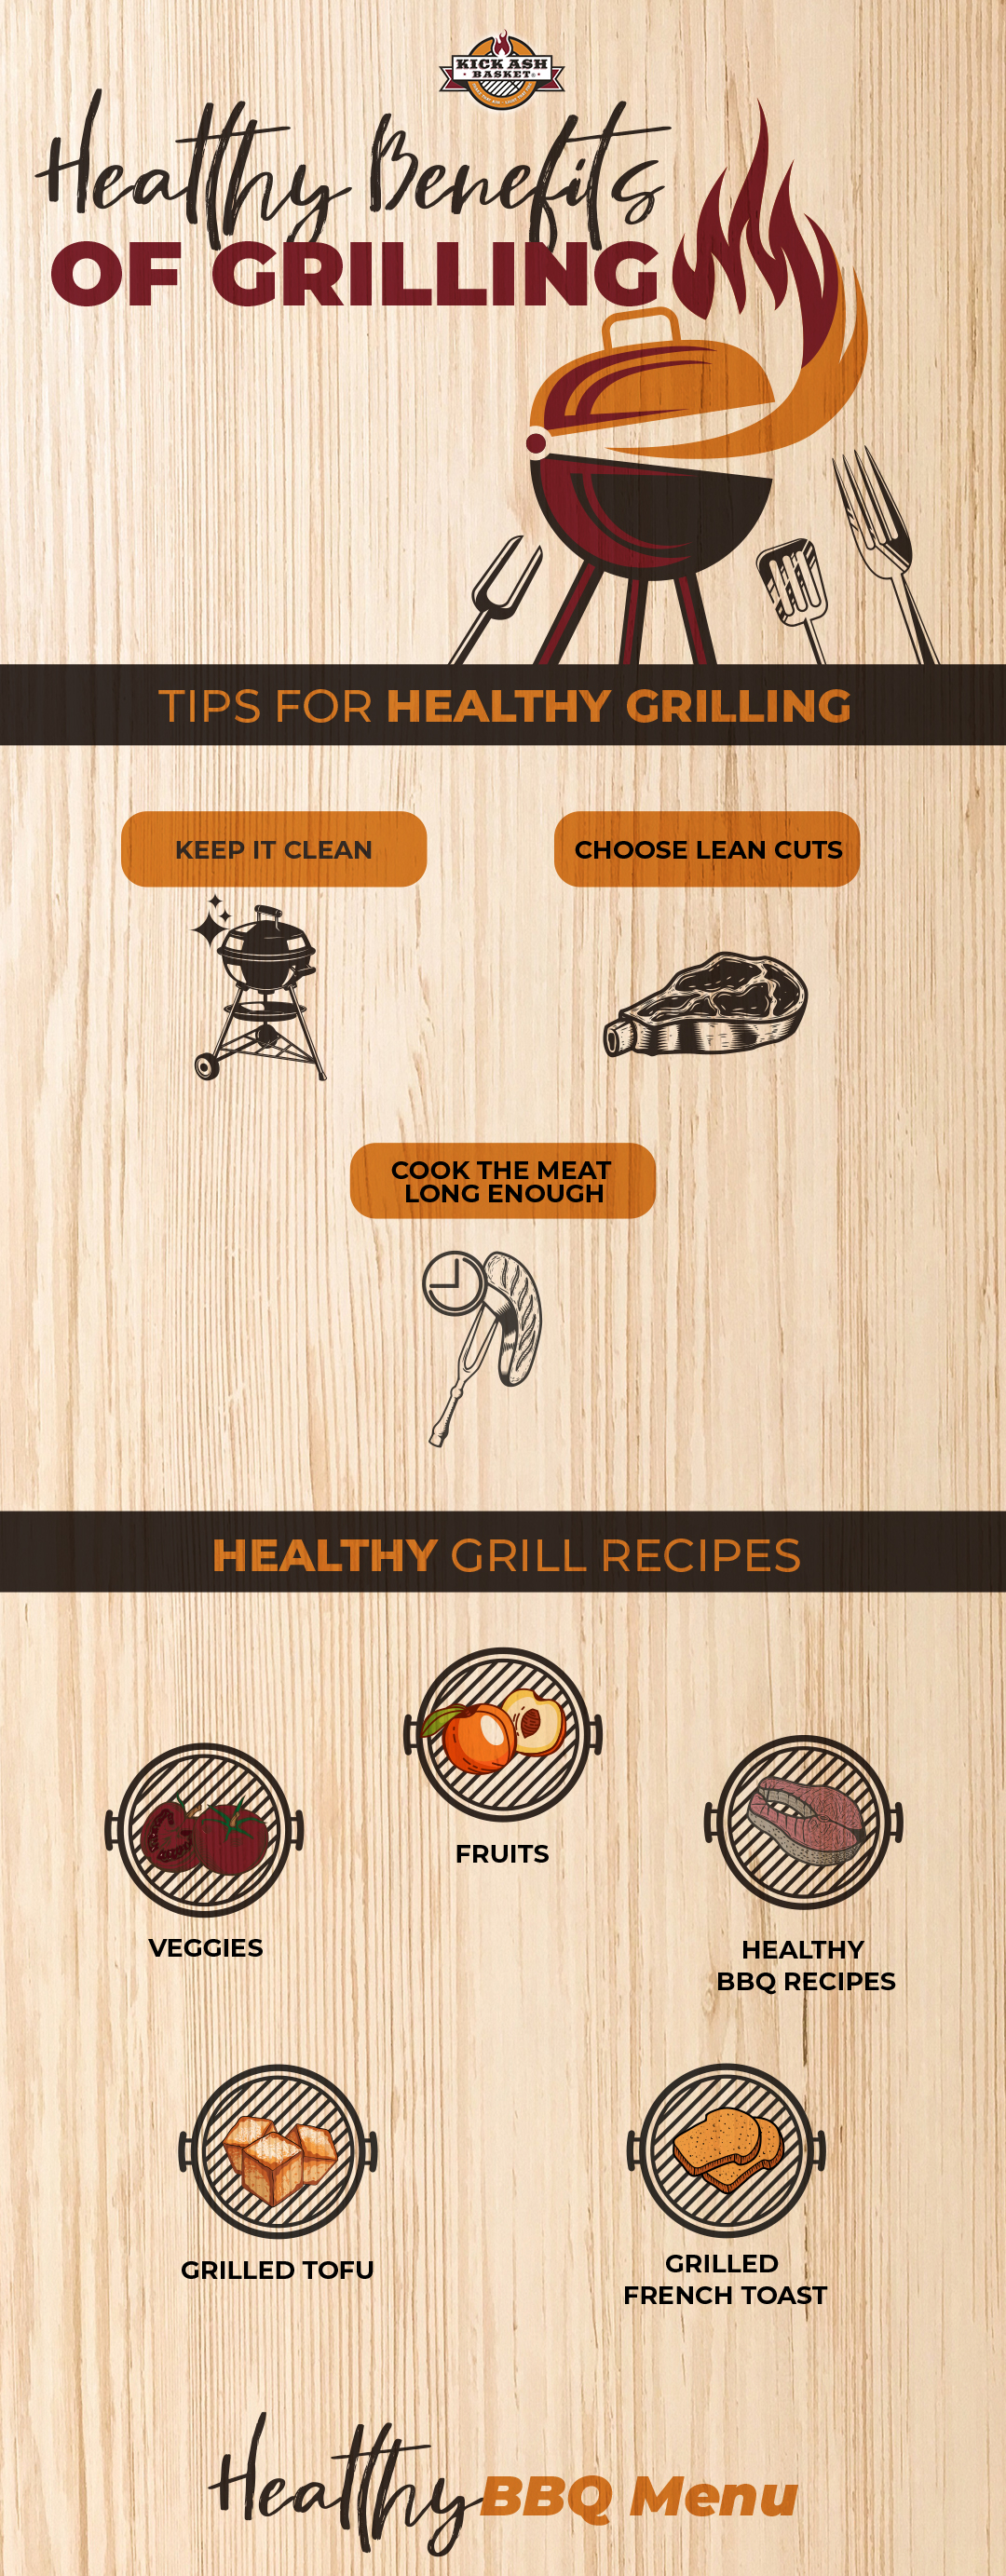 healthy grilling recipies